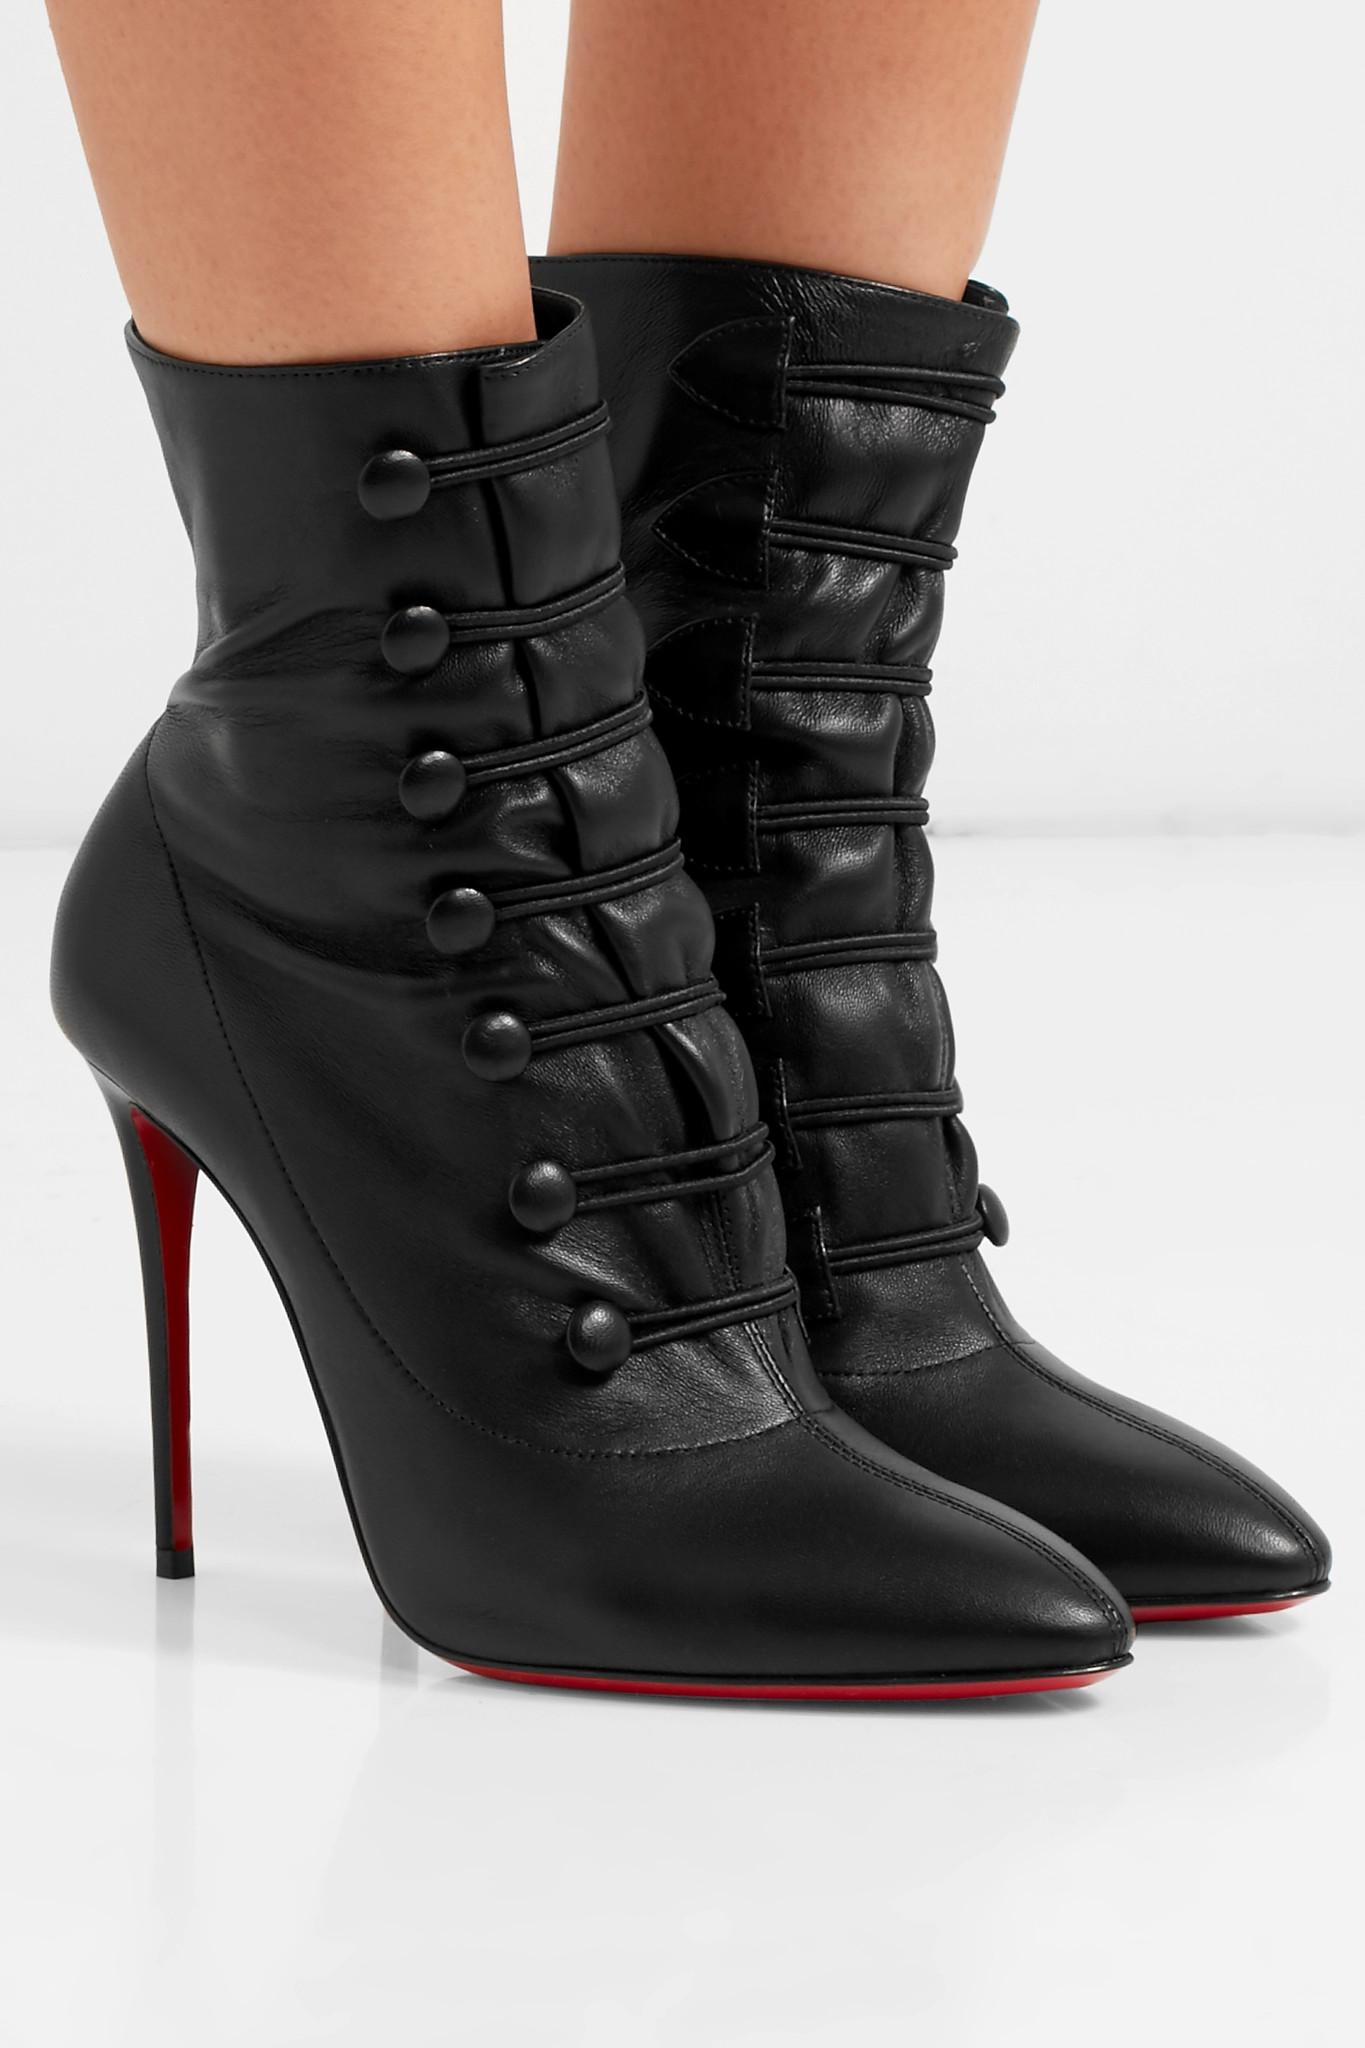 14912678e7da Christian Louboutin - Women s French Tutu 85 Leather Booties - Black - Size  40 (10. View fullscreen